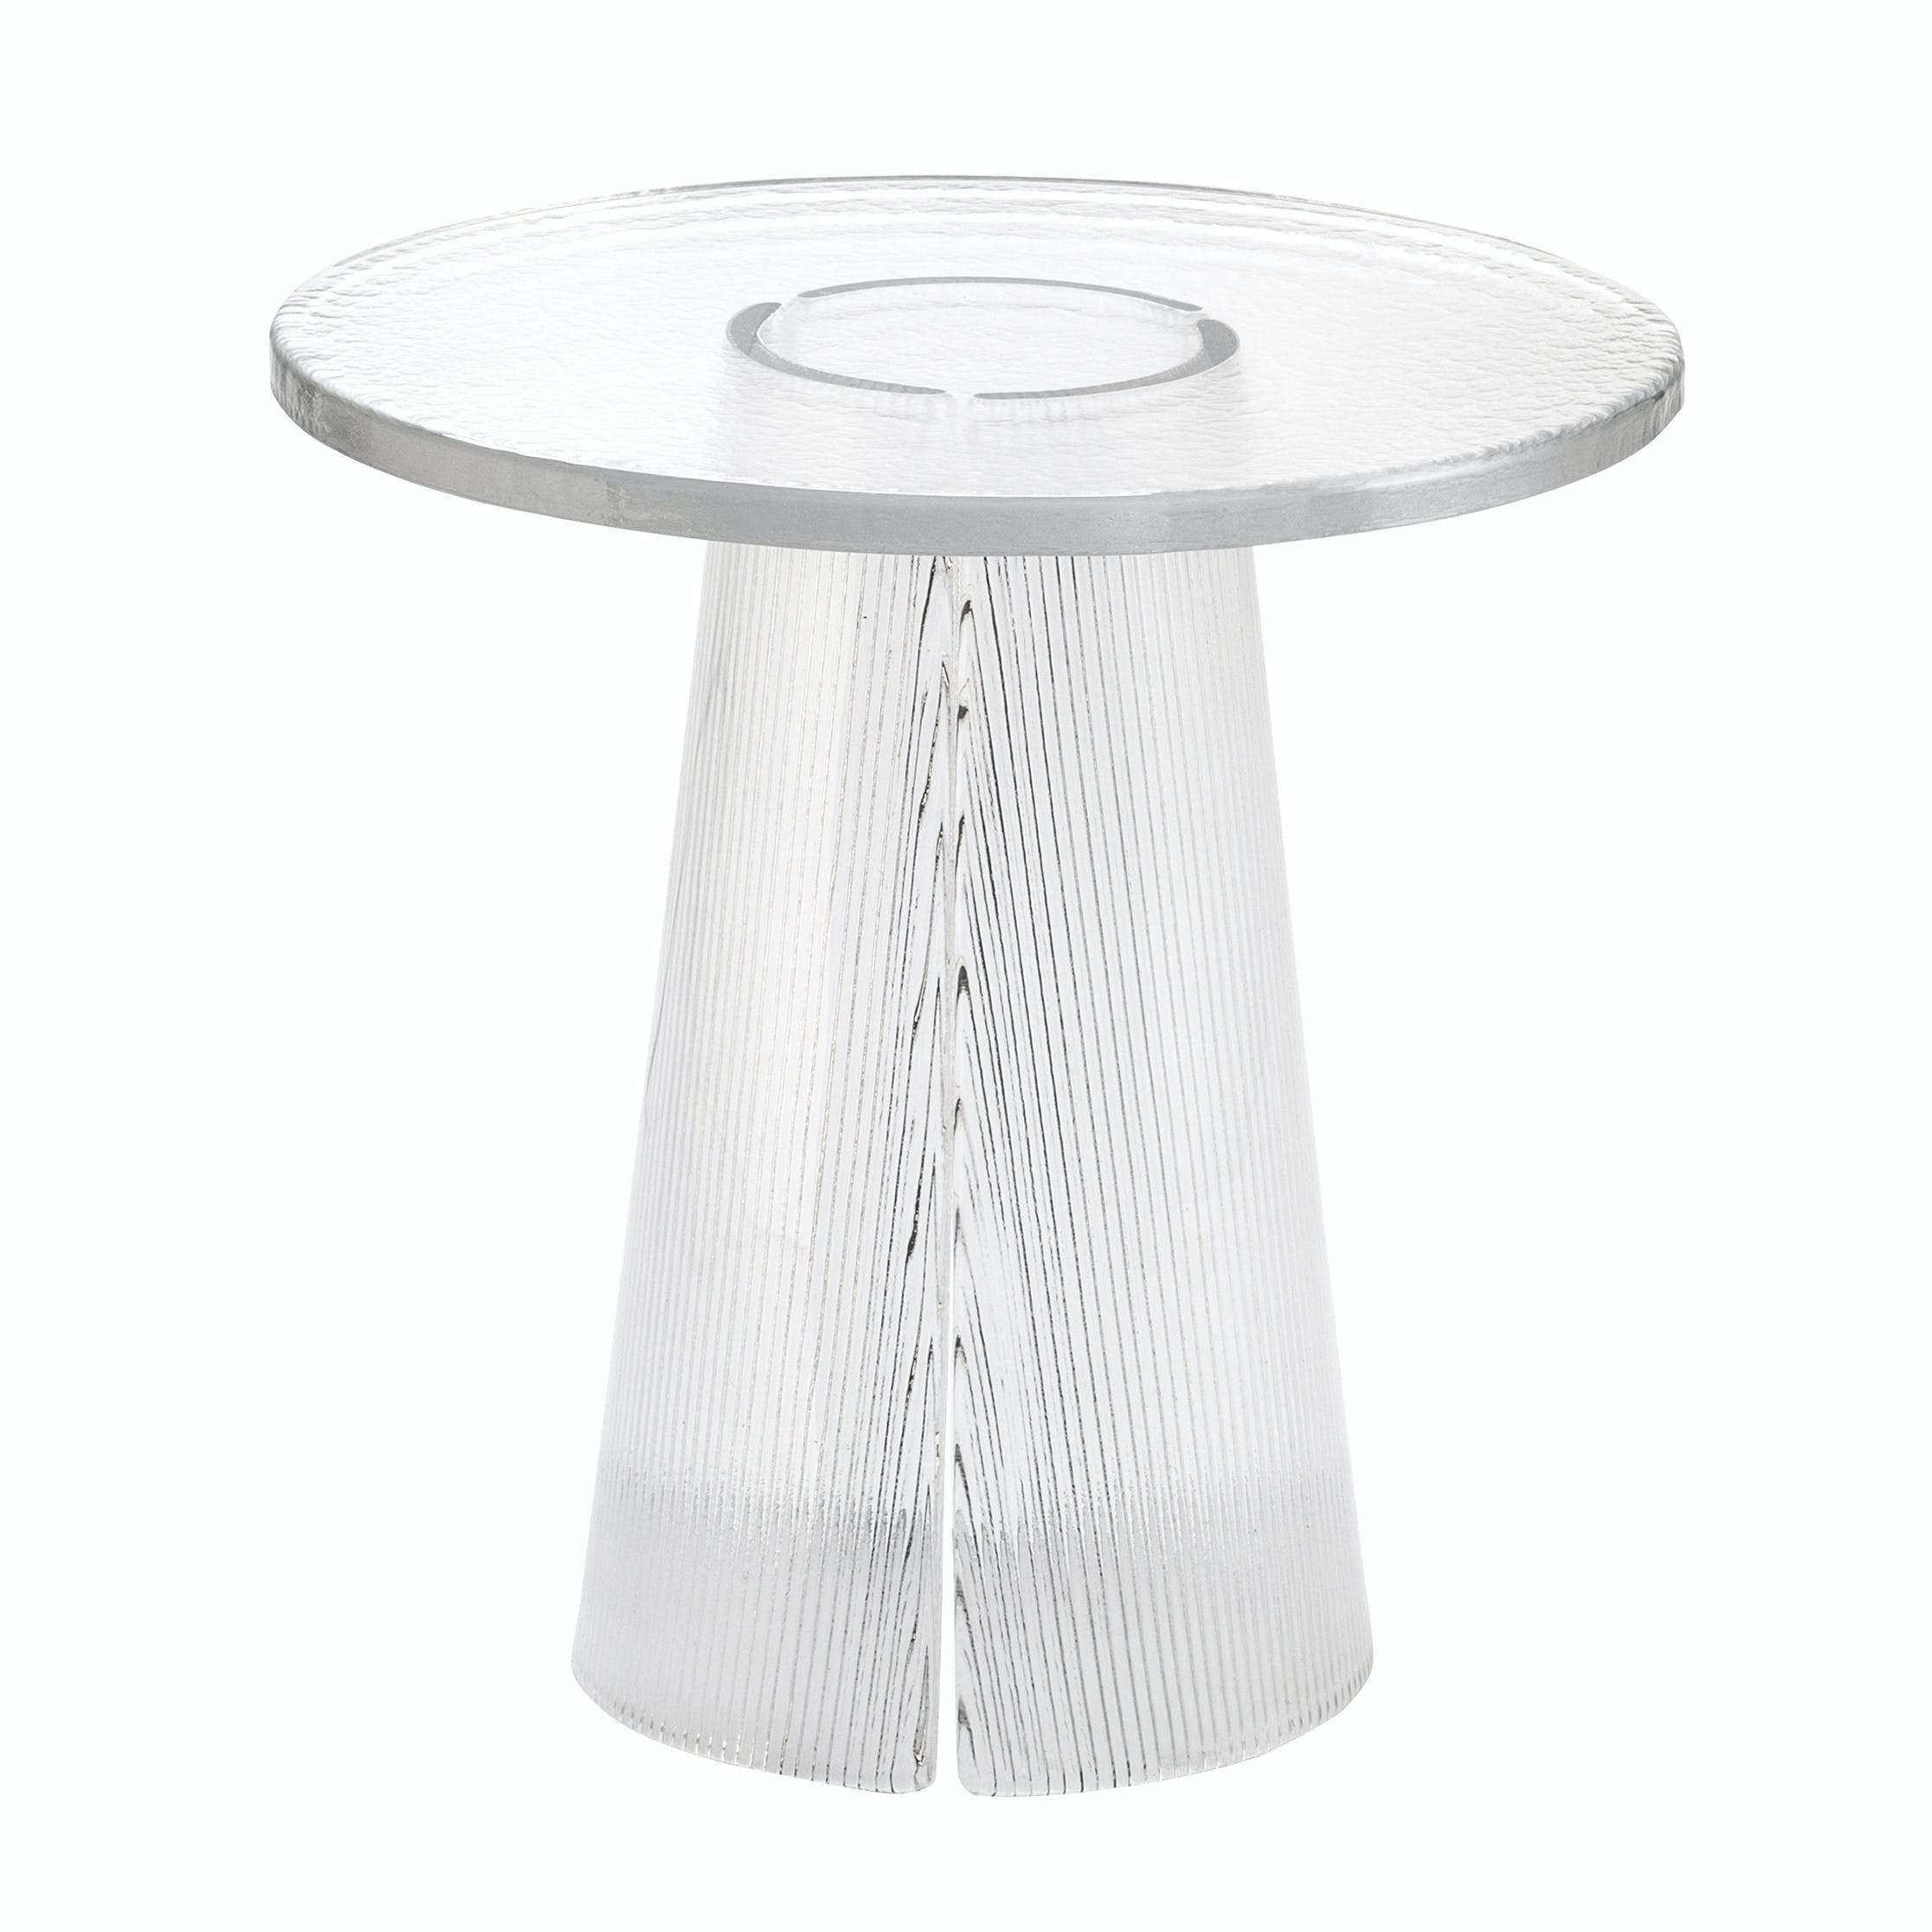 Pulpo-bent-side-table-high-haute-living_190513_204855